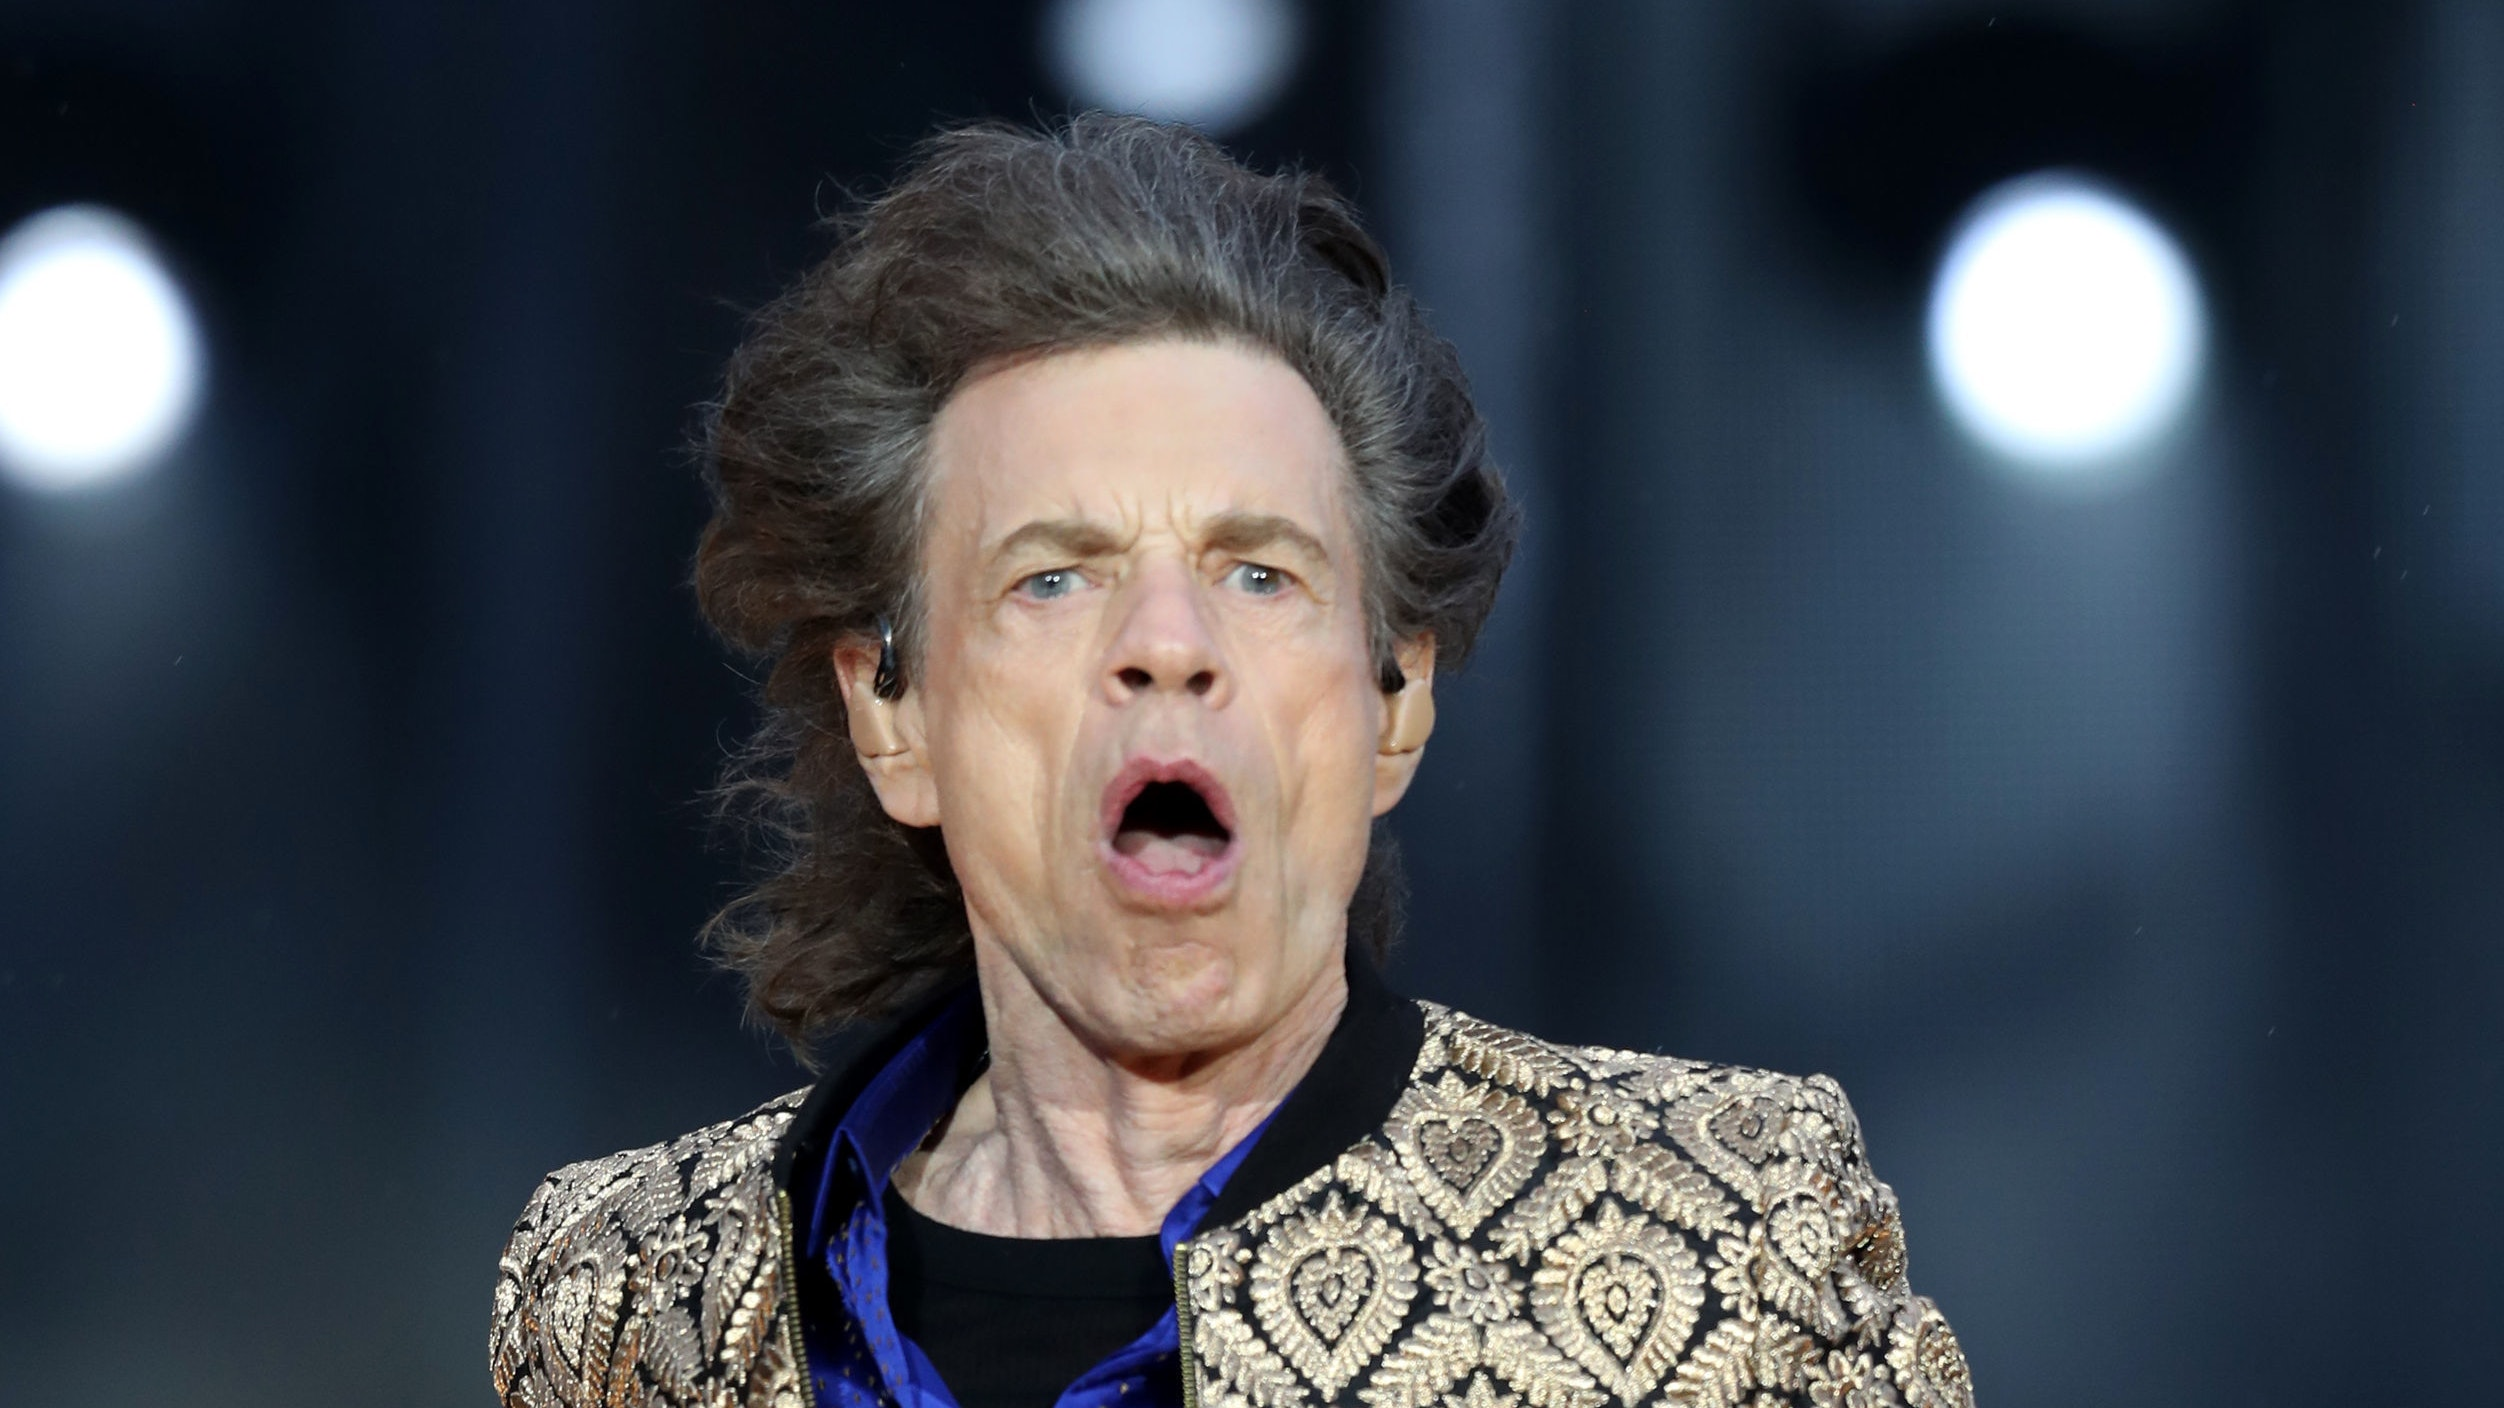 Stones postpone North American tour as Jagger receives medical treatment